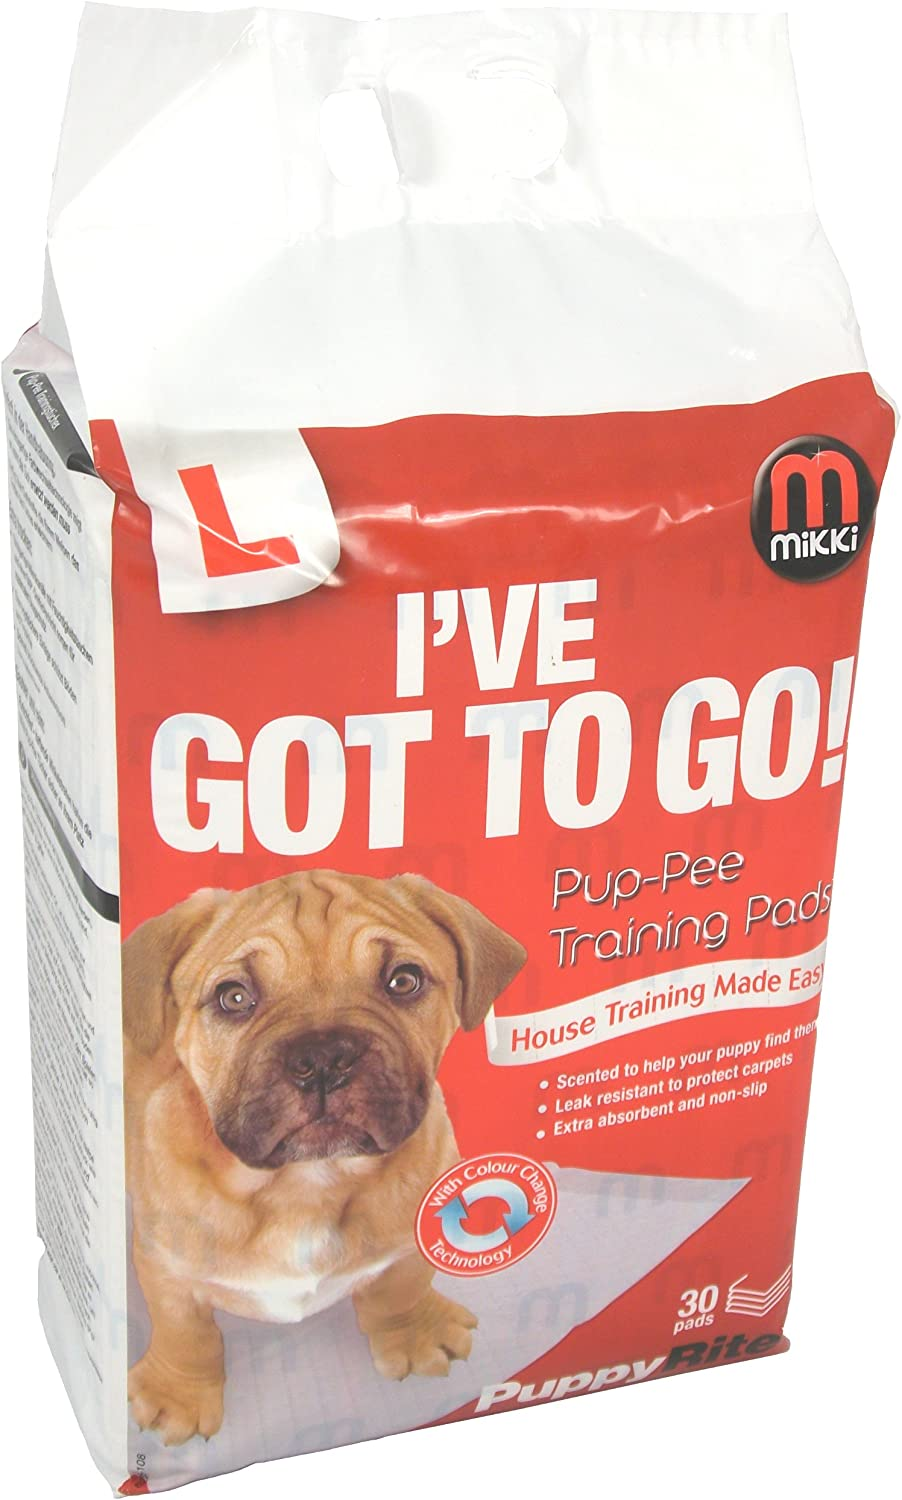 Mikki Puppy Toilet Training Pup-Pee Seattle Mall Pads - Special price for a limited time